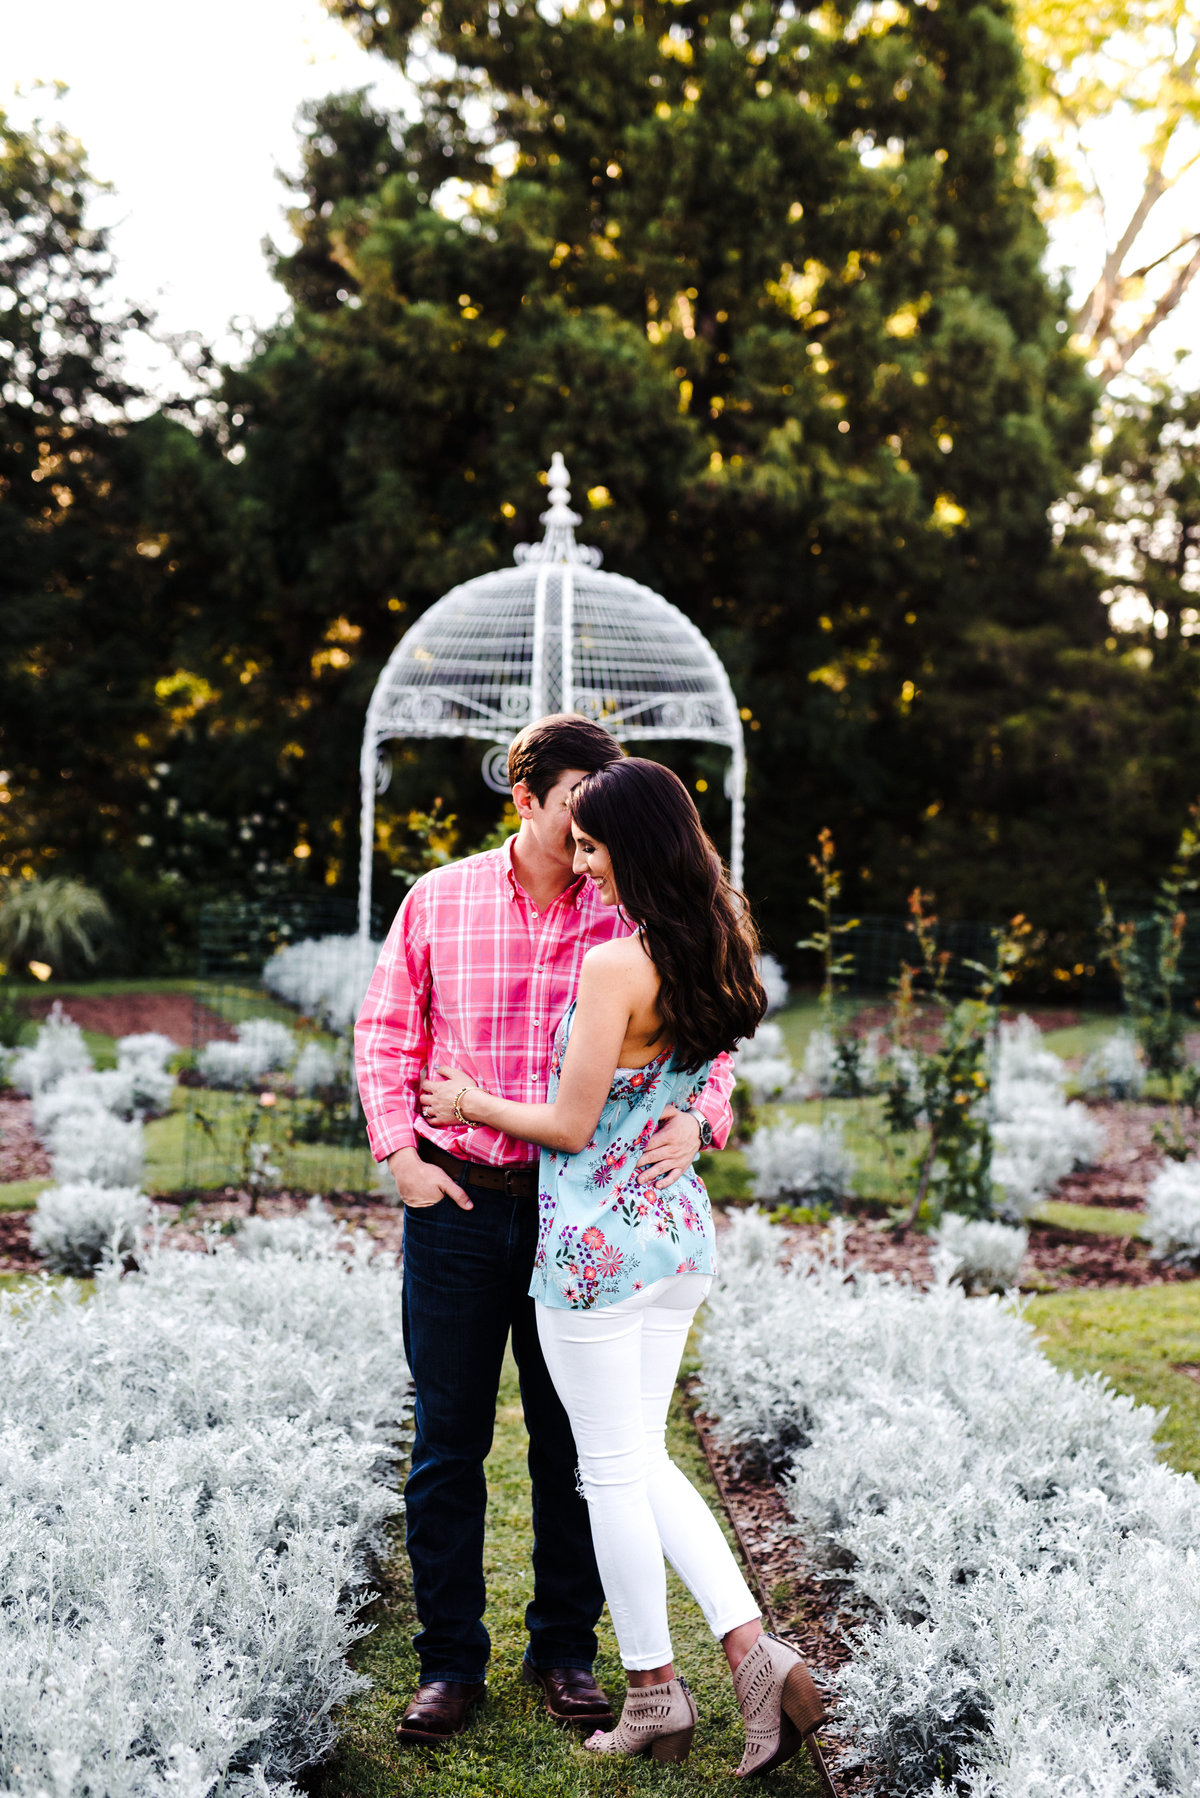 Hills and Dales Estate Engagement Session - 25